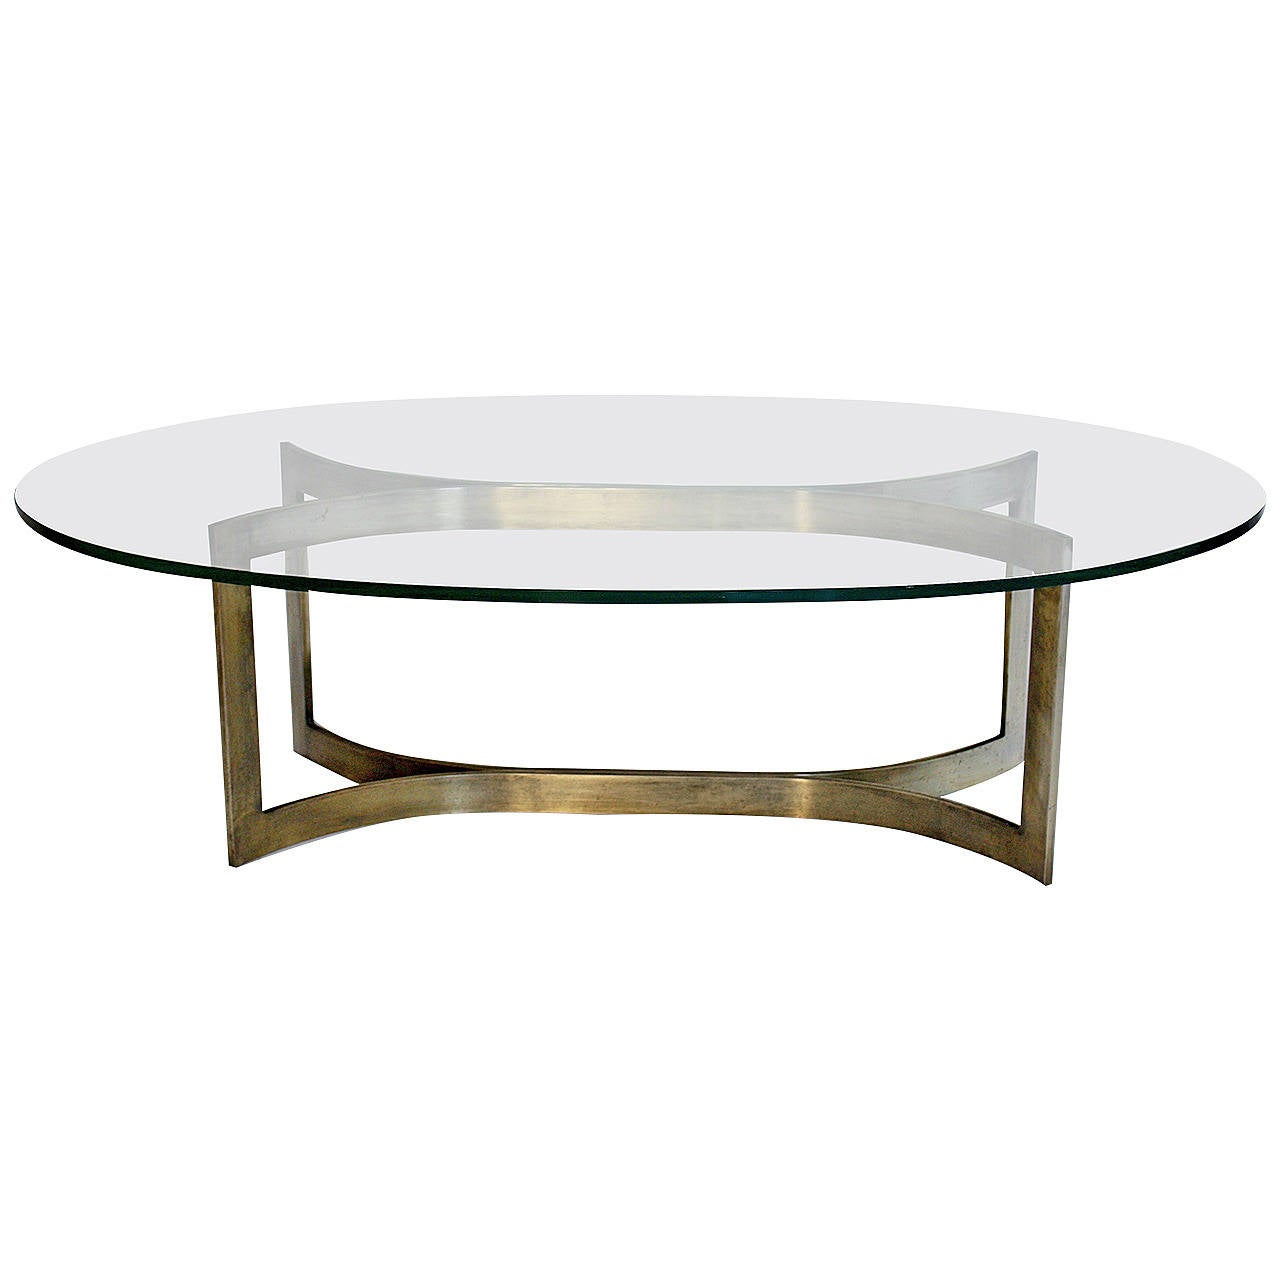 Baker bronze and glass oval cocktail table at 1stdibs for Cocktail tables